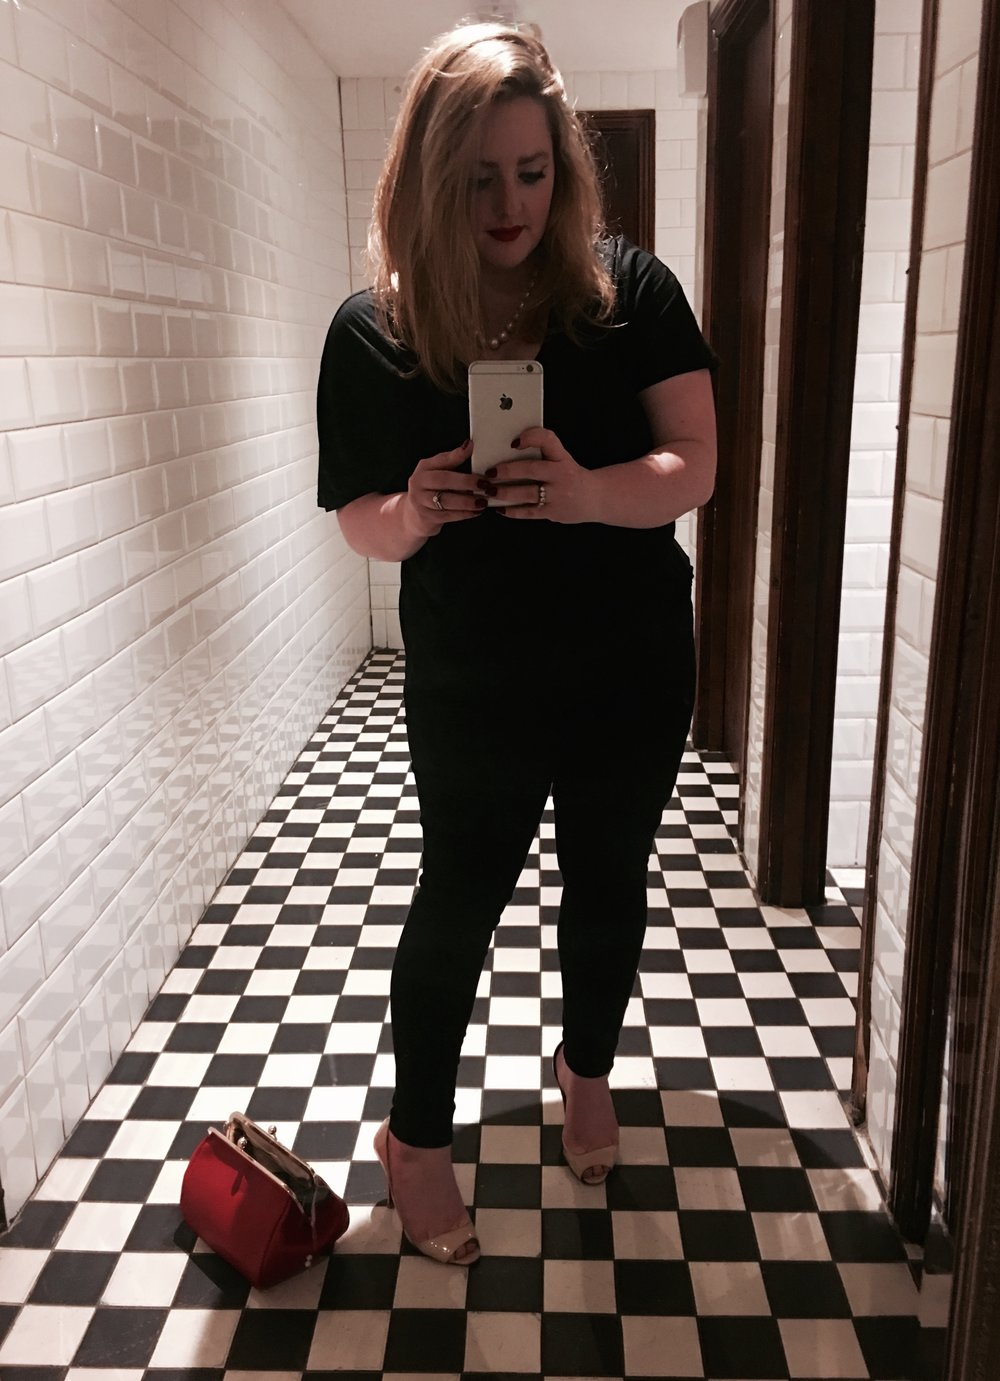 There I am now. Taking an oul selfie in the loo. Classy.